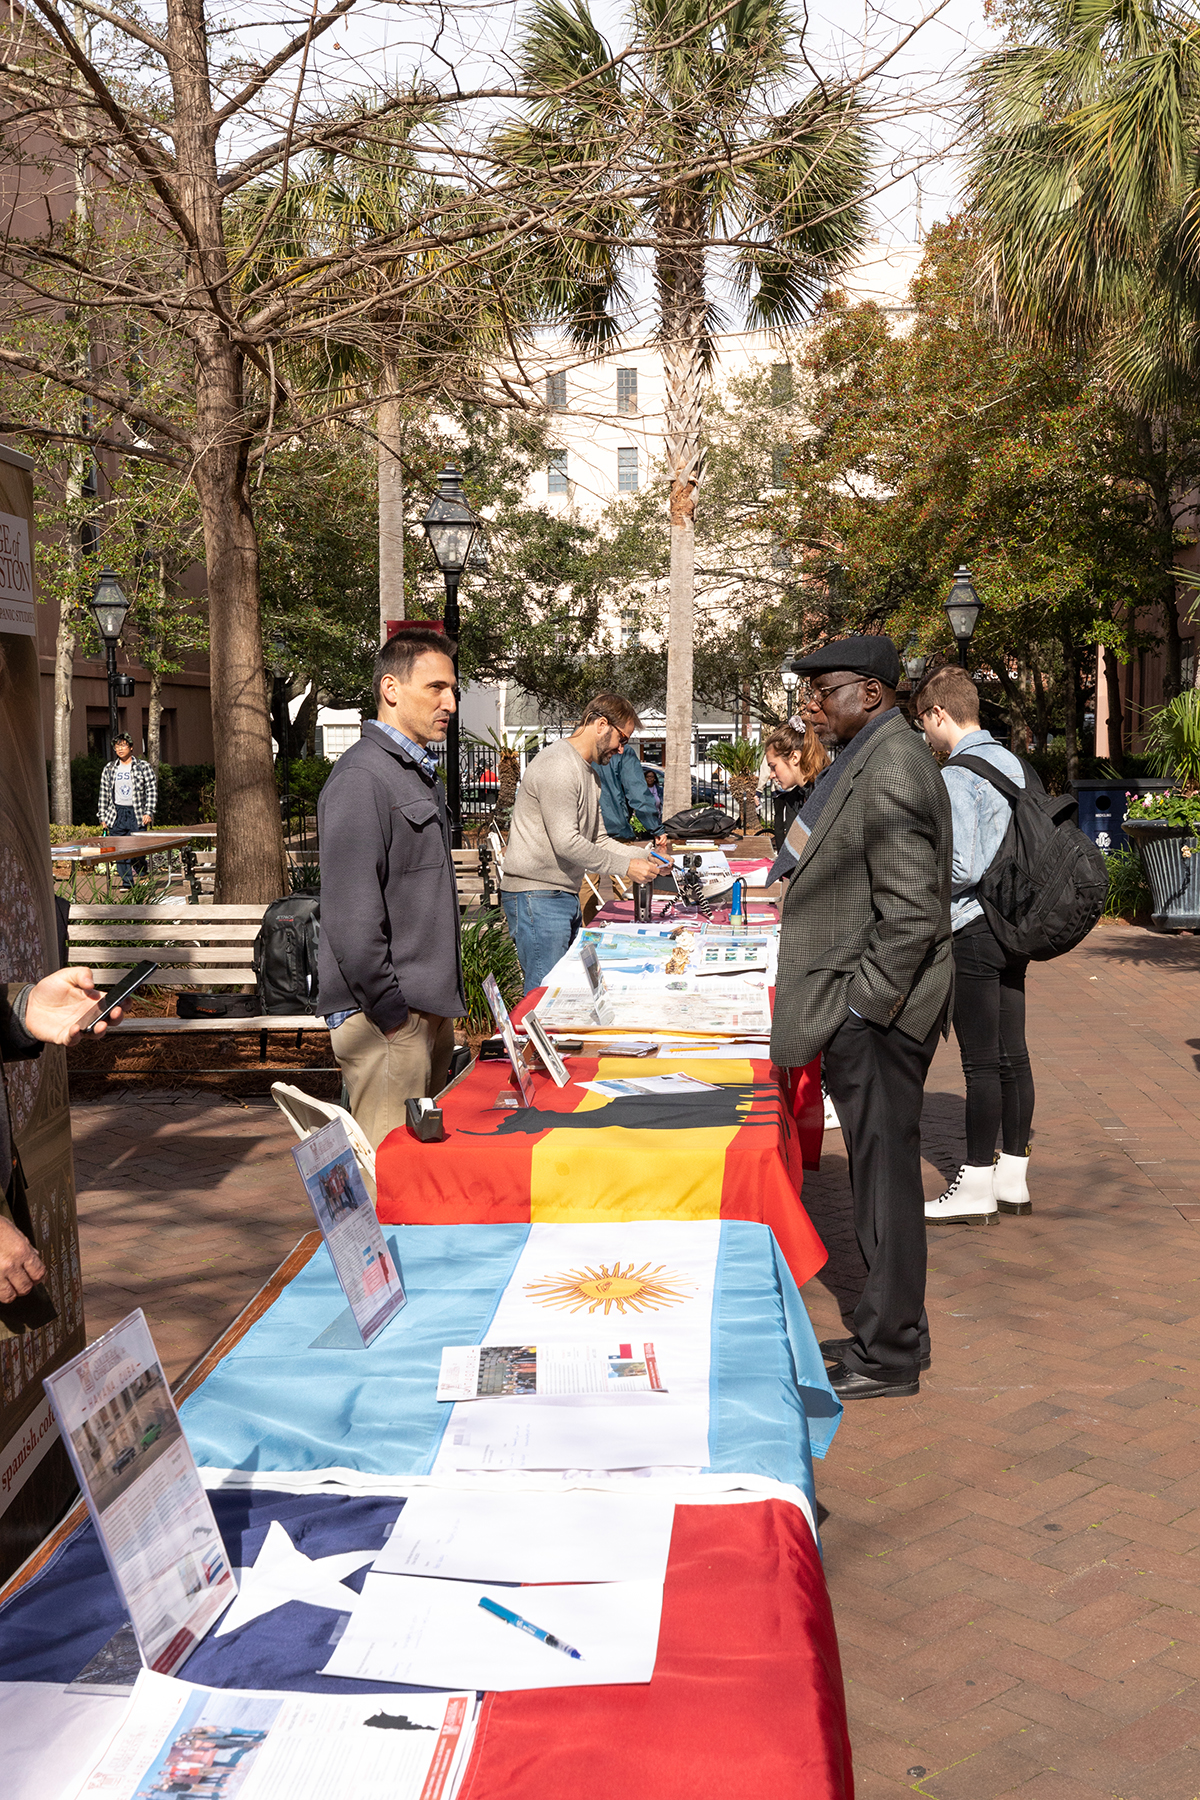 Study Abroad Fair in Cougar Mall